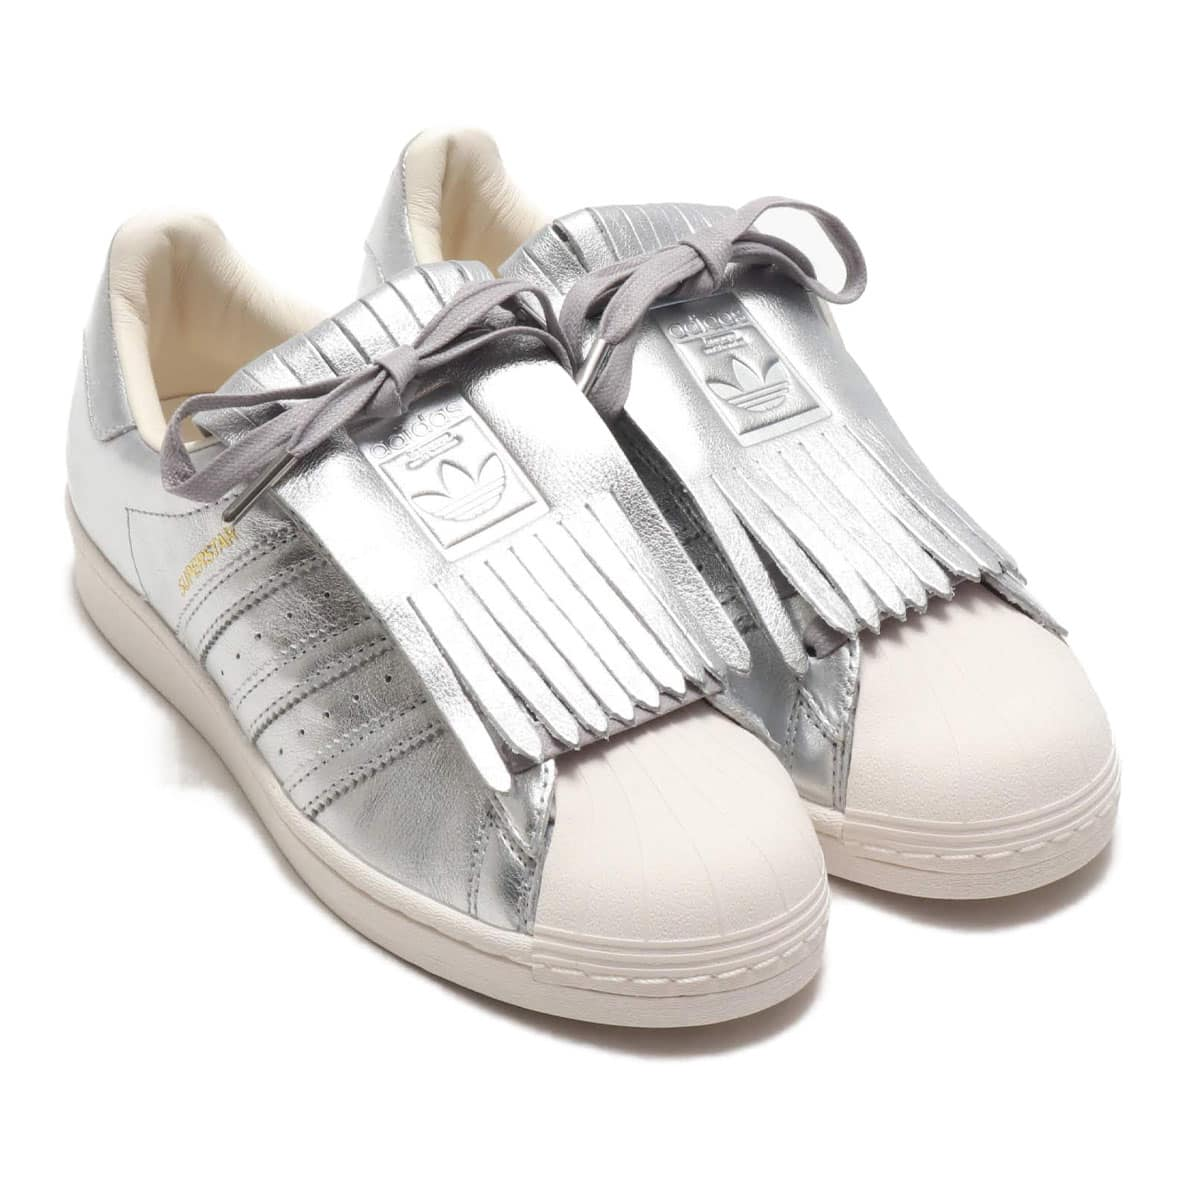 adidas SUPERSTAR W SILVER METARIC/SILVER METARIC/CHORK WHITE 20SS-S_photo_large